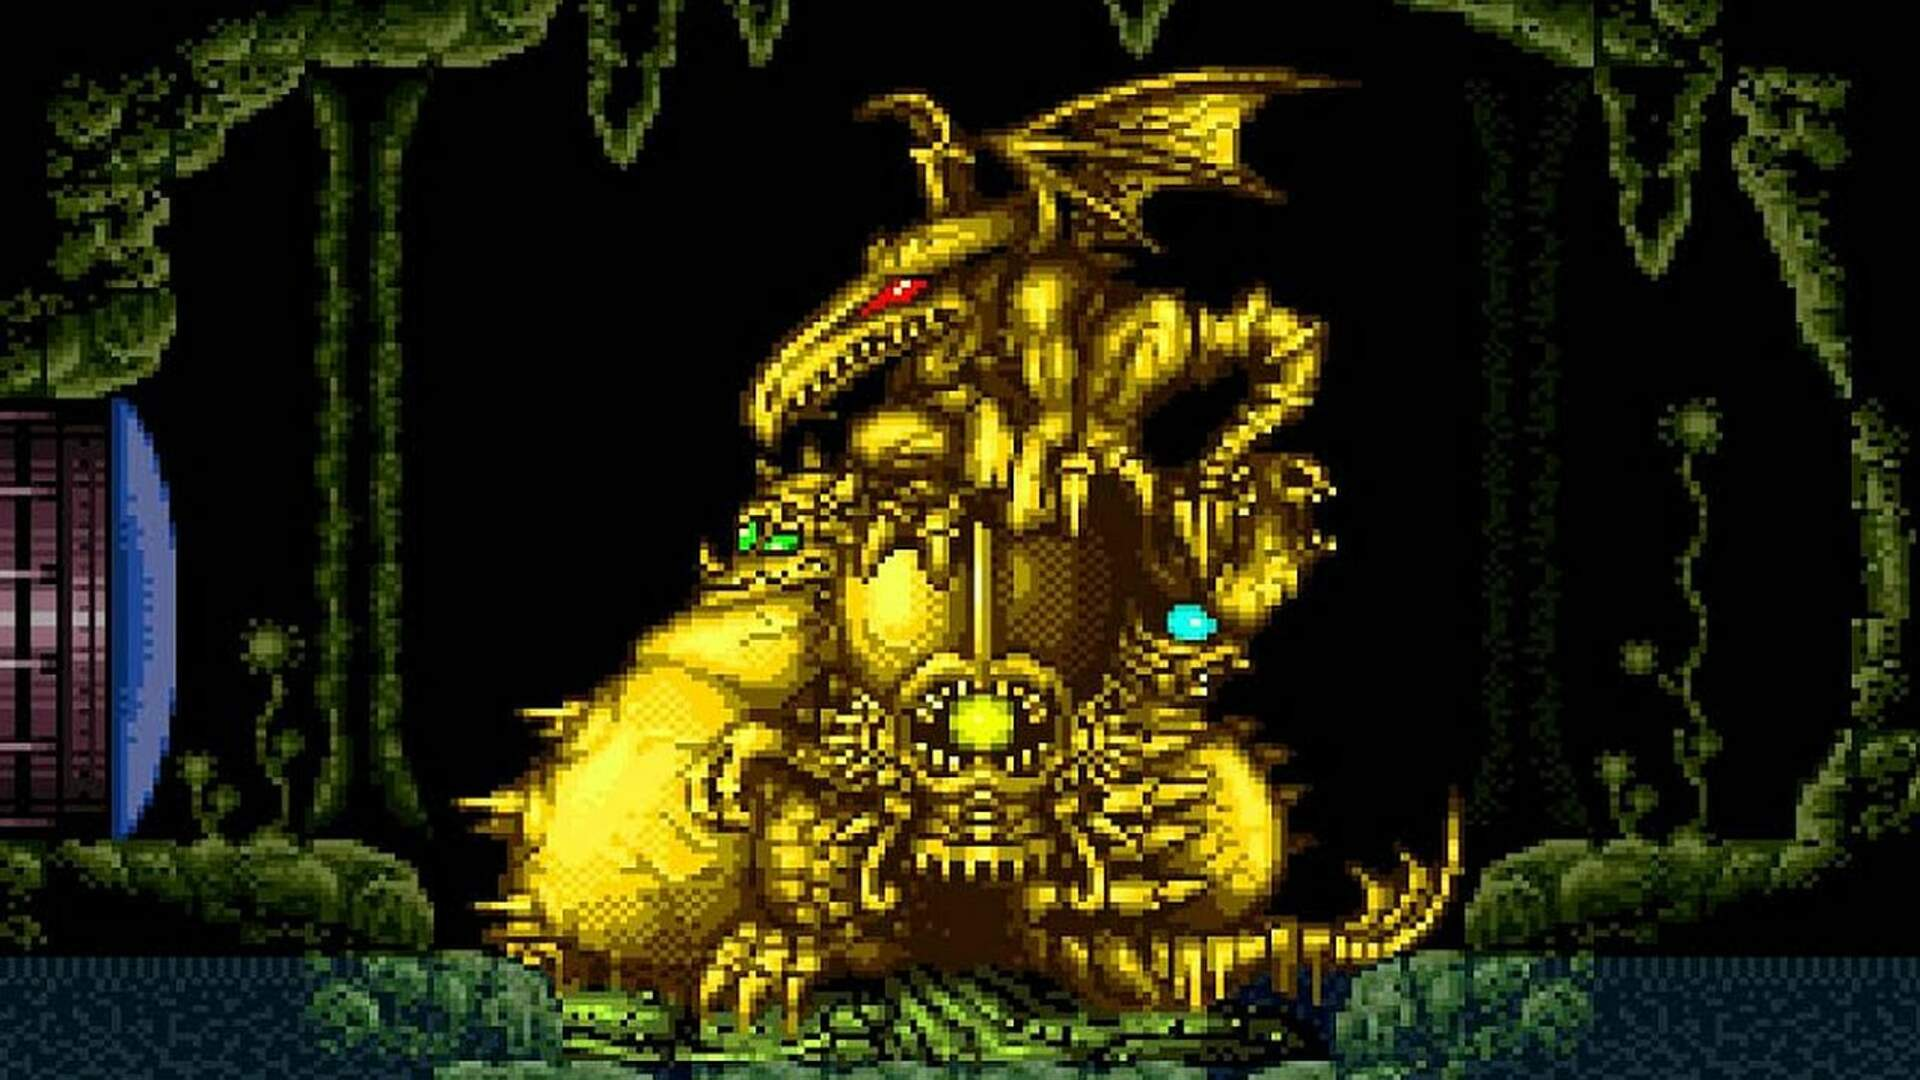 Nintendo Counselors Secretly Used a Forbidden Map to Help Super Metroid Players